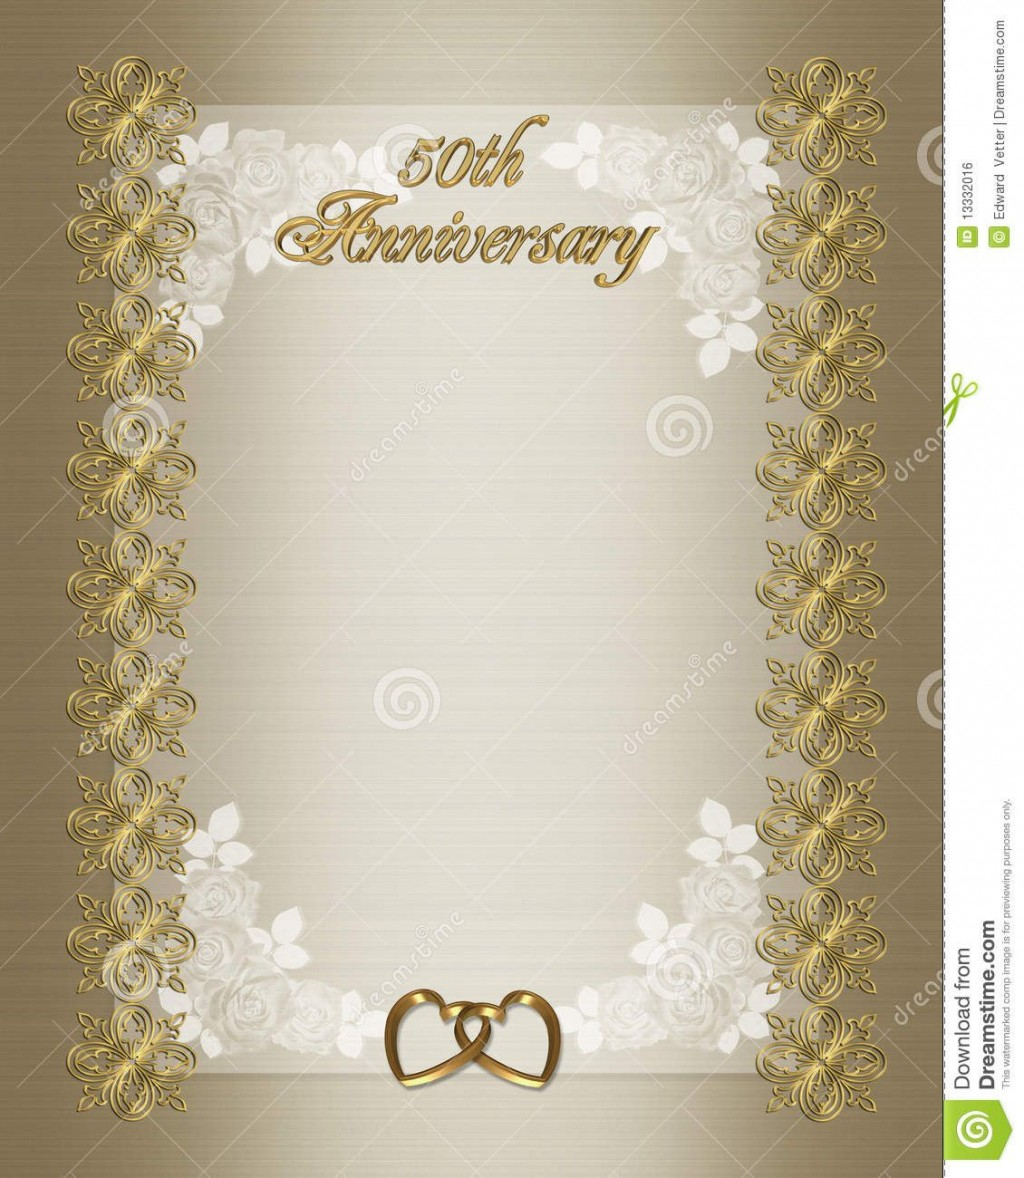 007 Breathtaking 50th Anniversary Invitation Template Free High Resolution  For Word Golden Wedding DownloadLarge